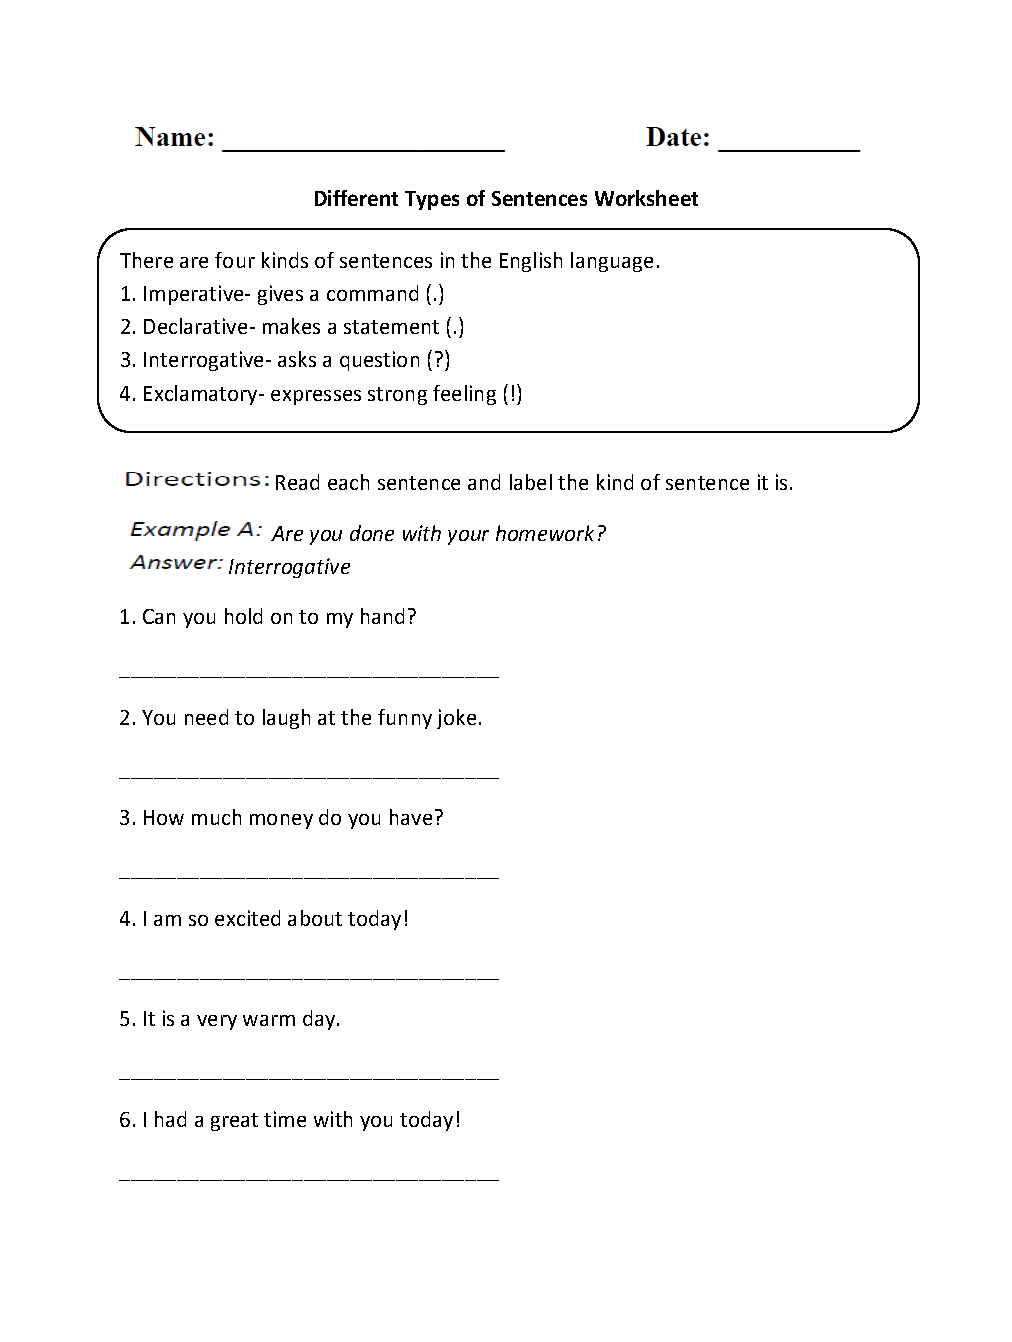 Sentences Worksheets | Types of Sentences Worksheets